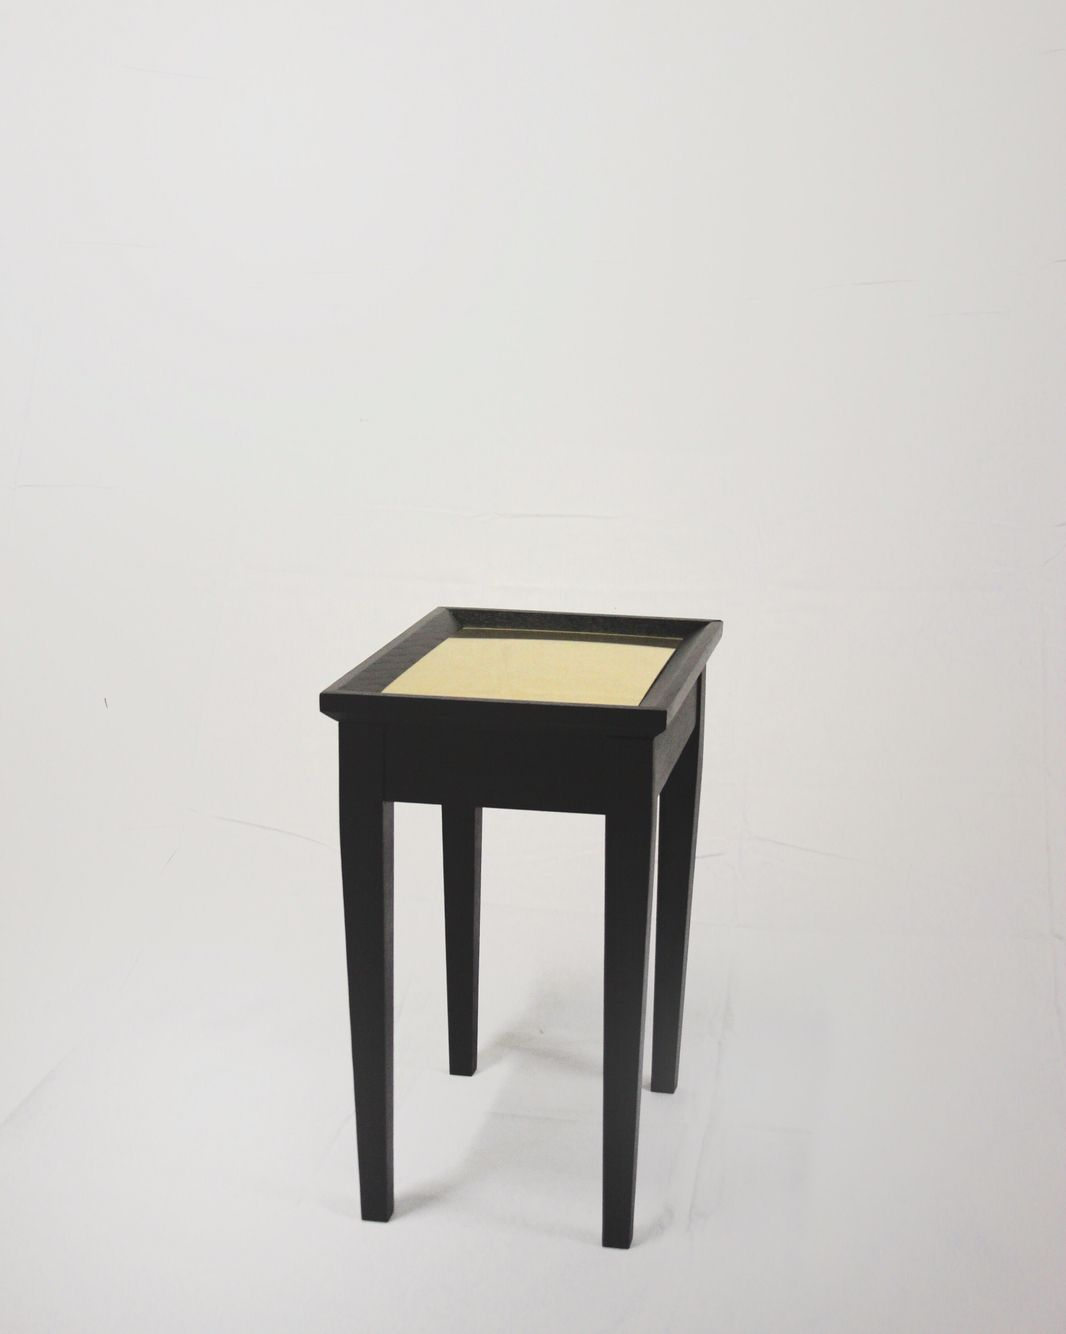 Couchtisch Goliath 90x90 Blk Gld End Table In Blacked Ash And Gold Mirror Goold